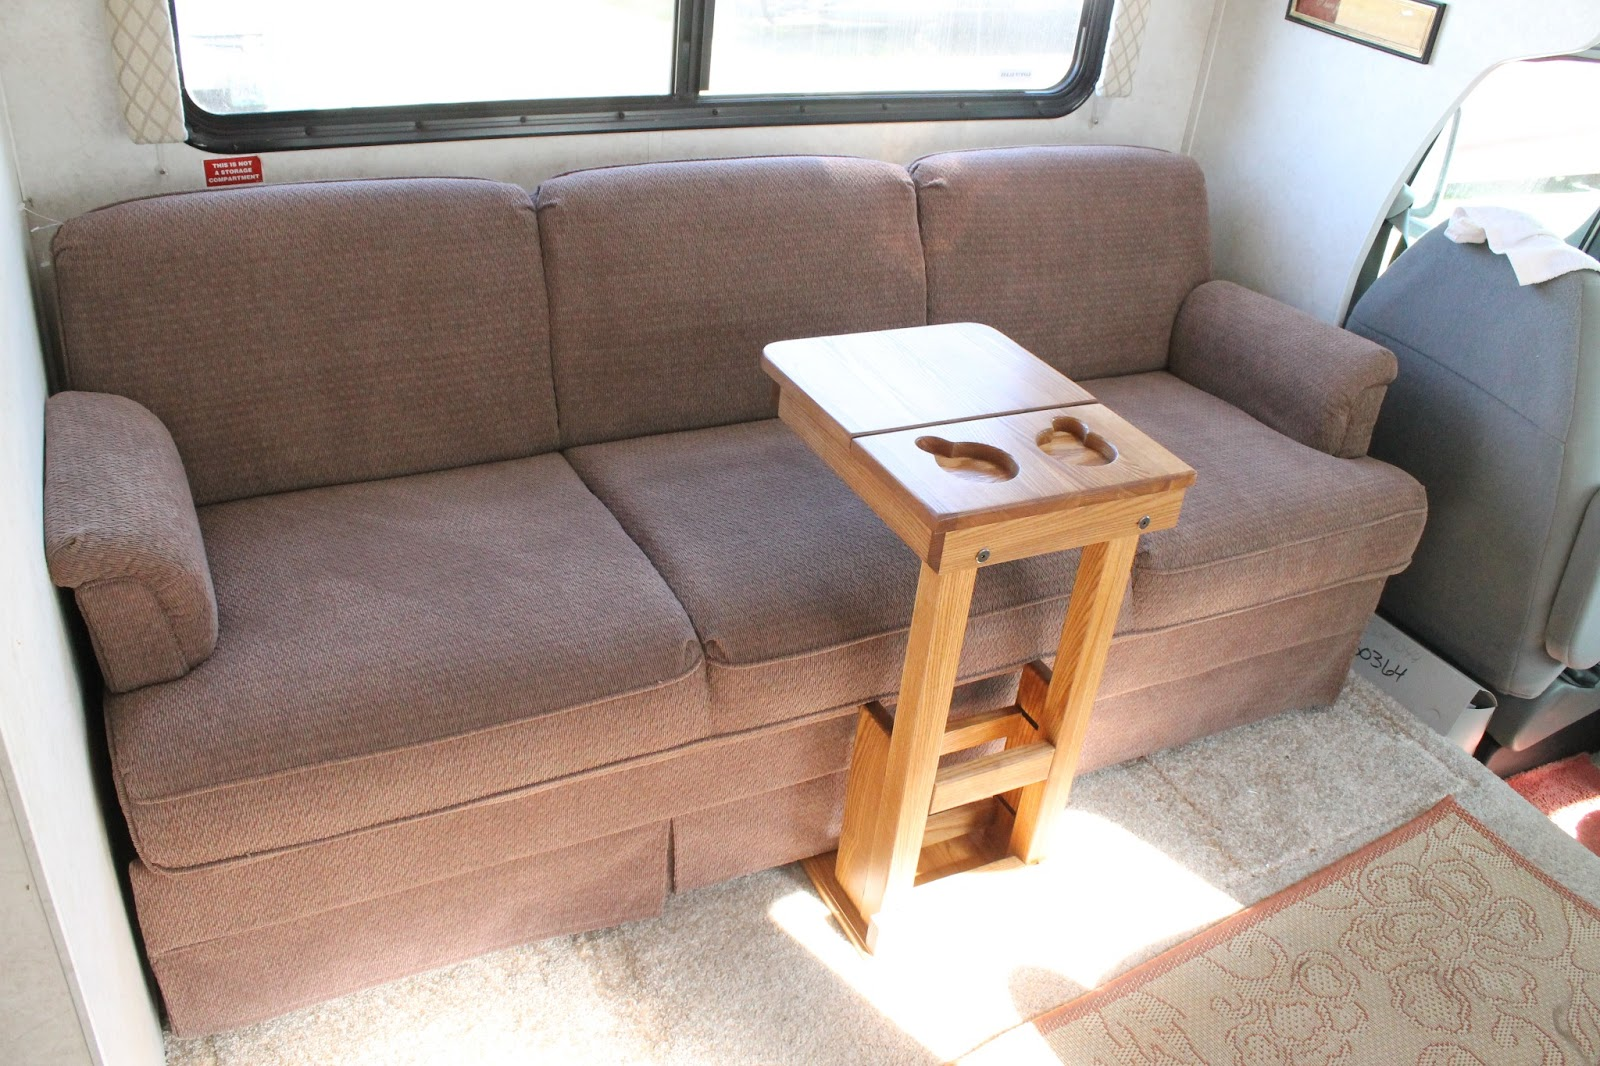 Small Table That Slides Under Sofa Black Fabric Chair Countryside Interiors Transforming Rvs And Trailers